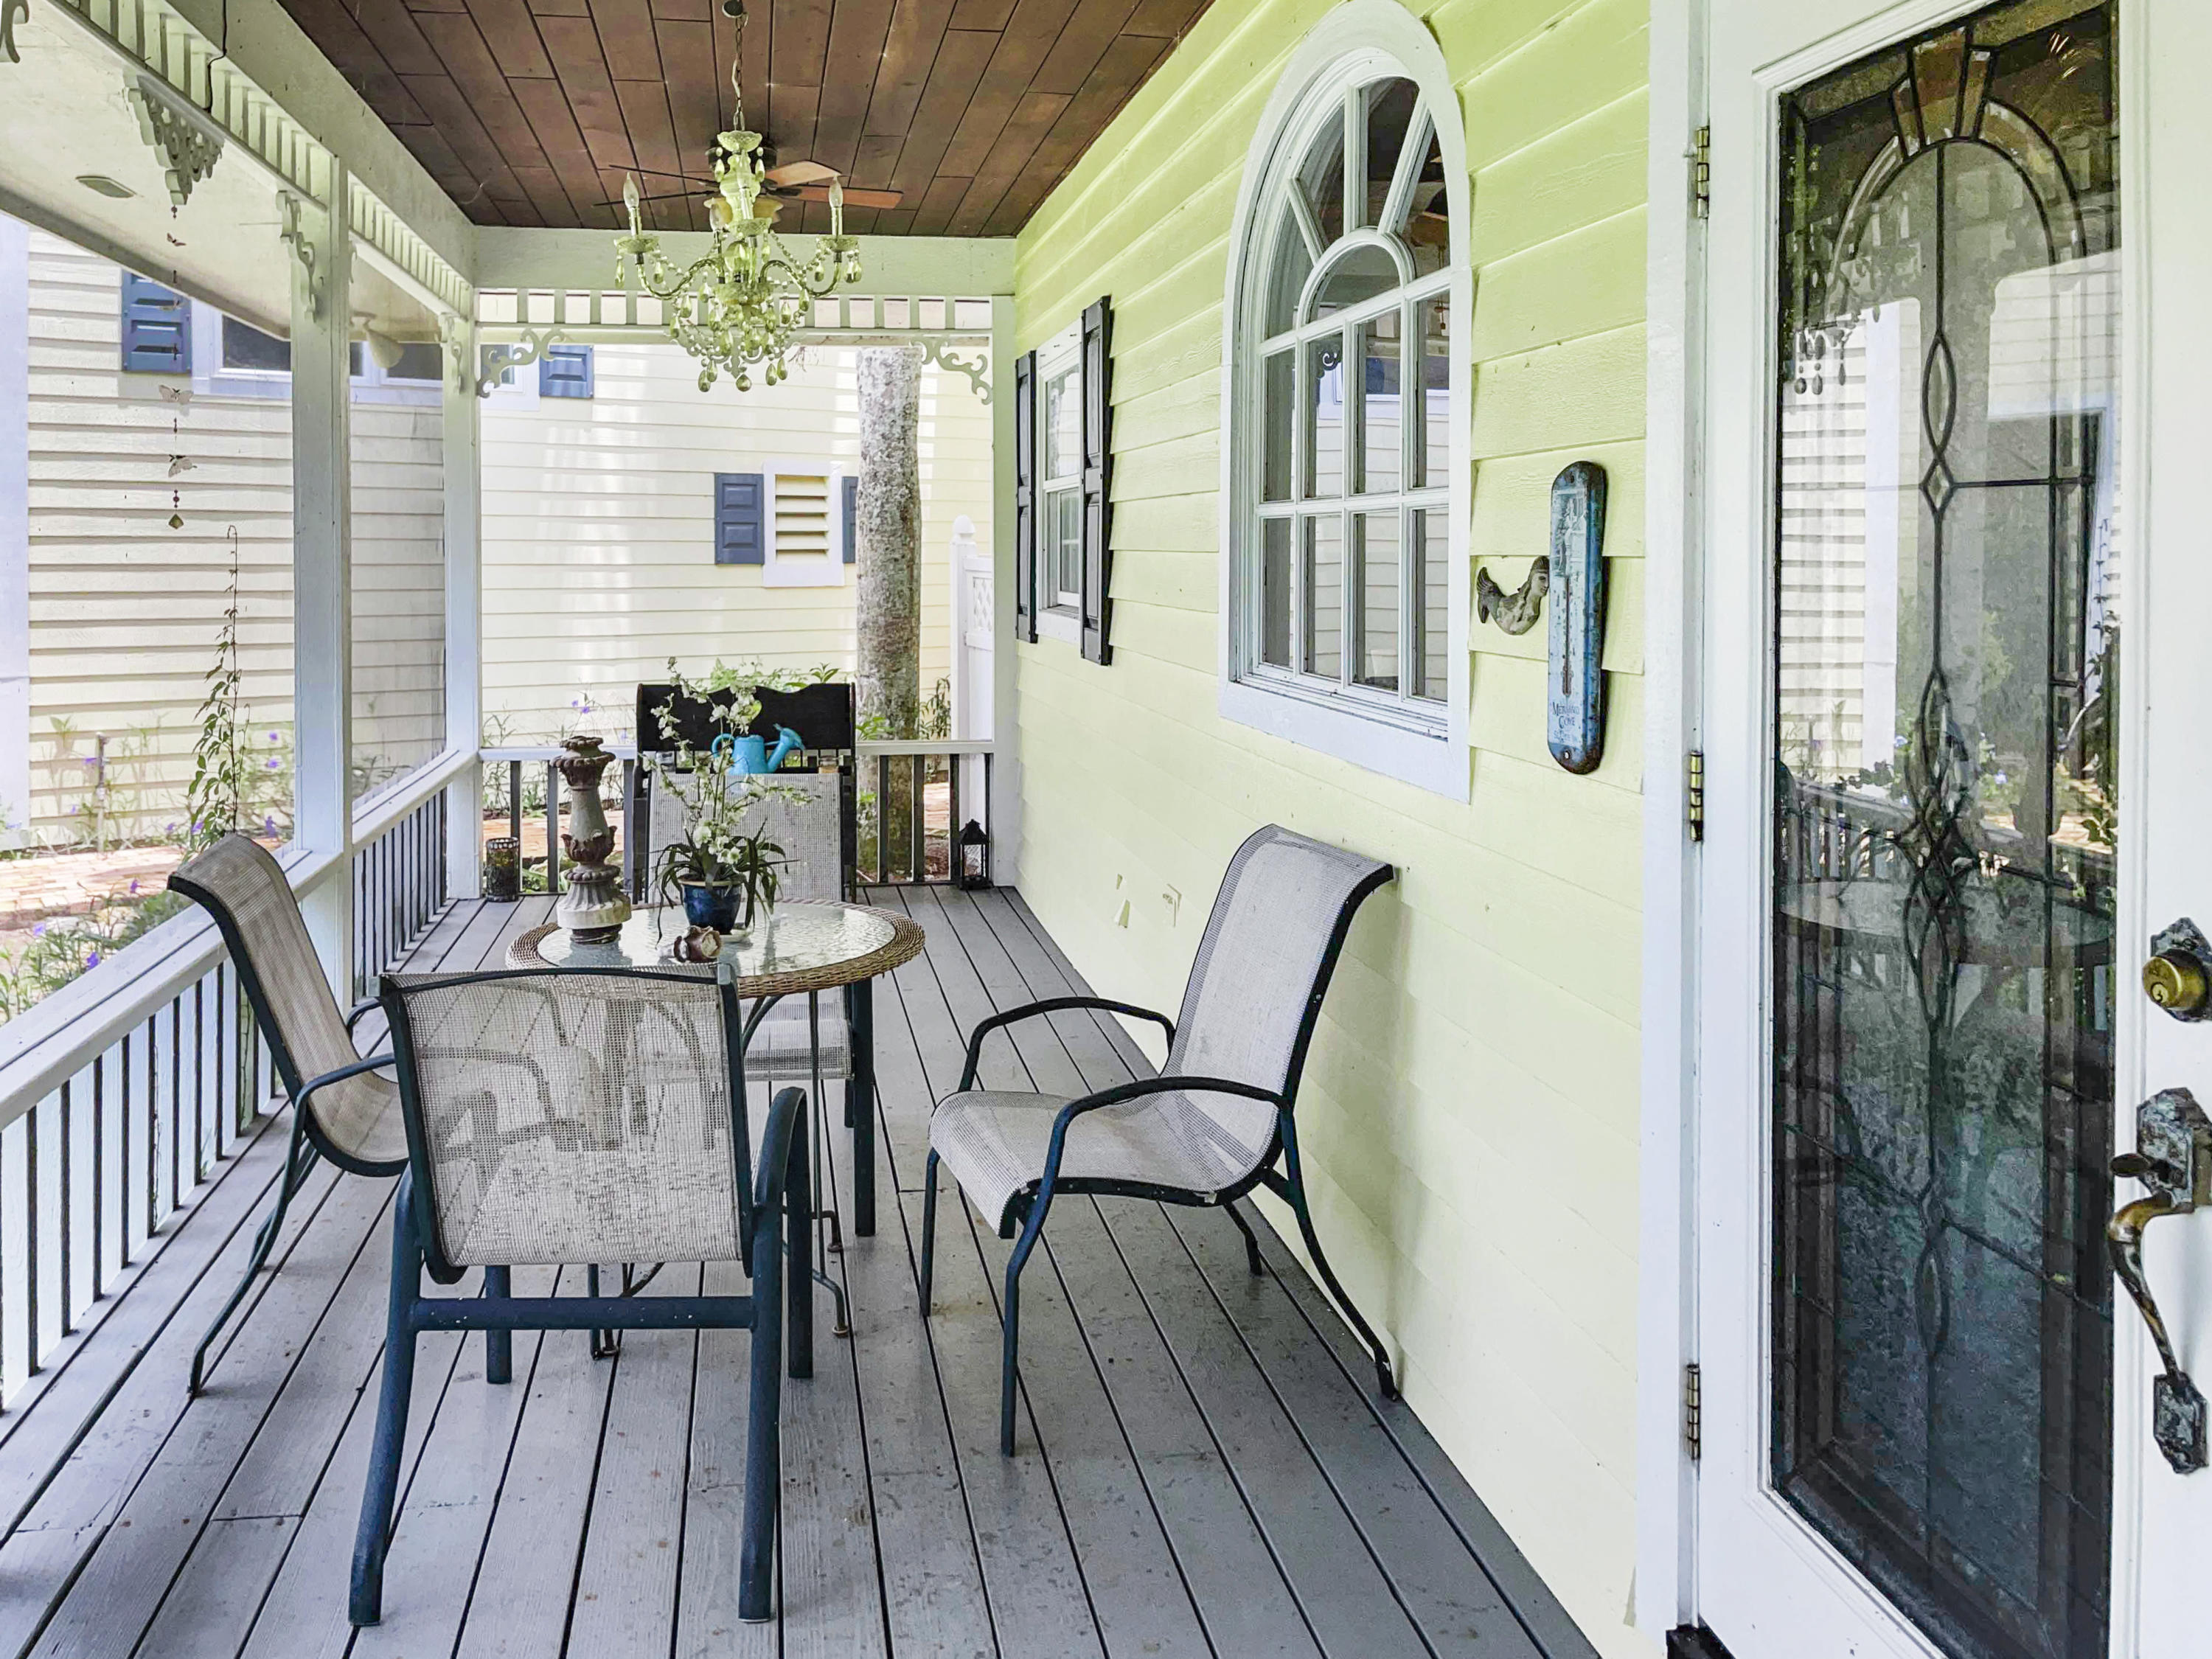 Screened Patio off Kitchen